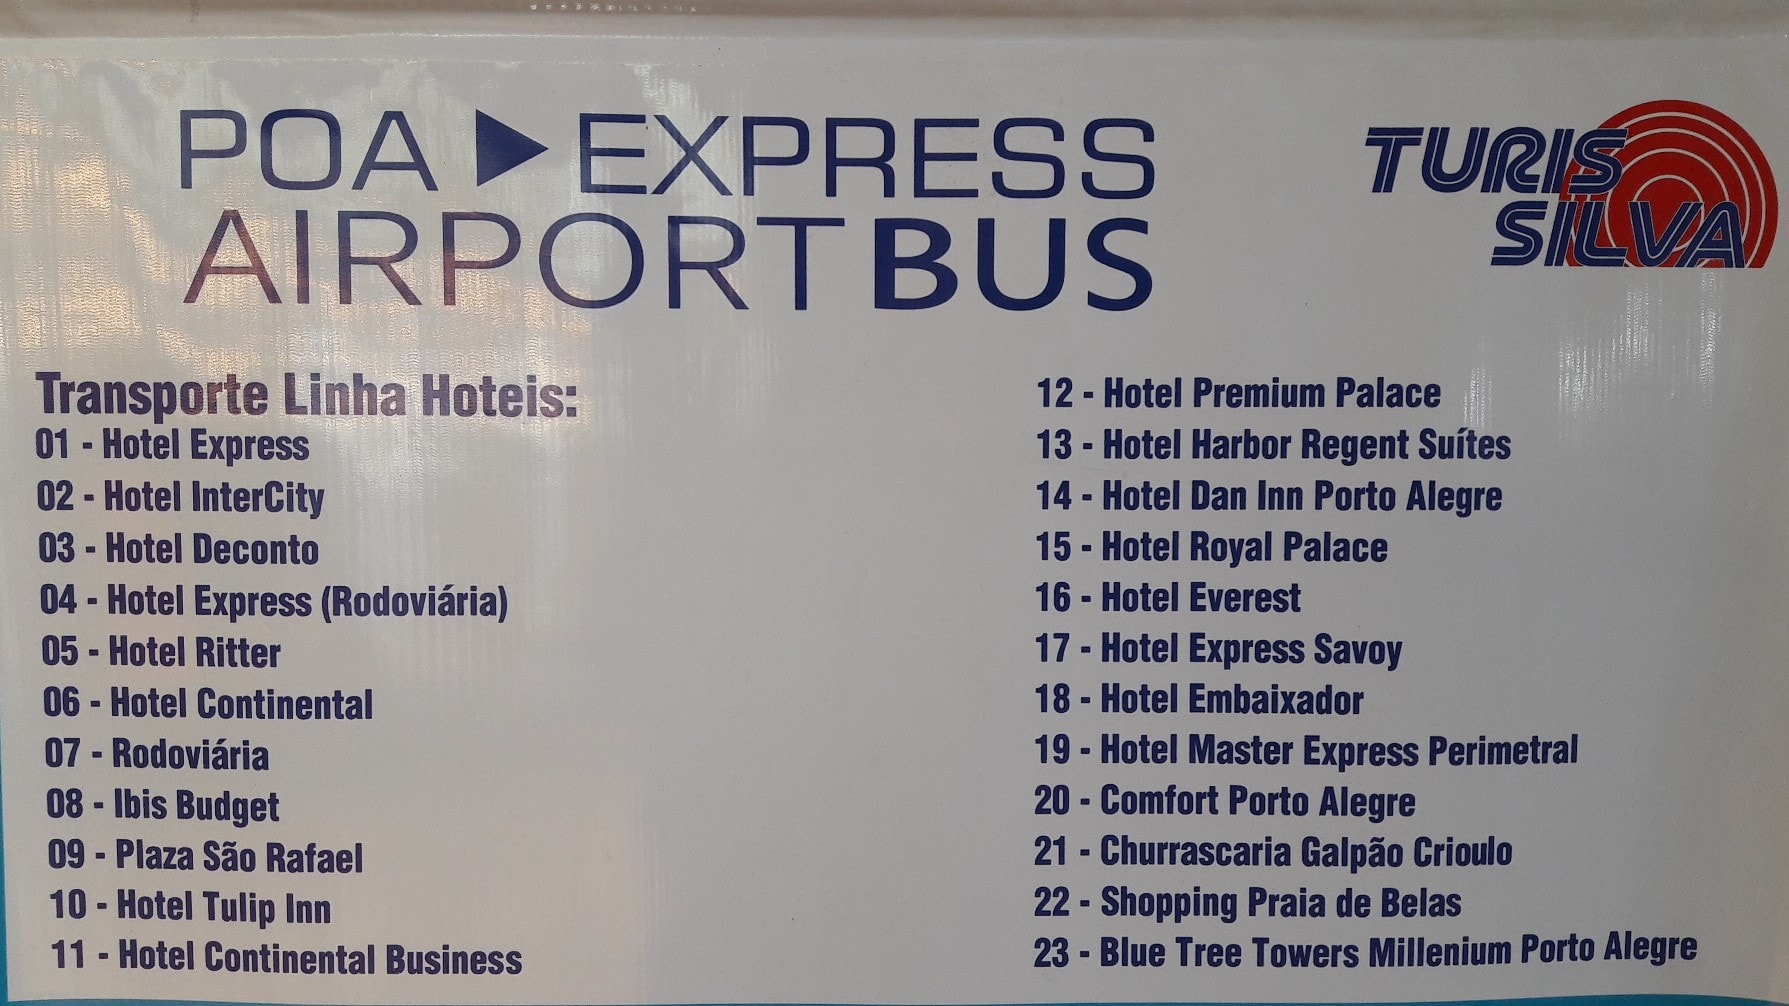 Poa Express Airport Bus